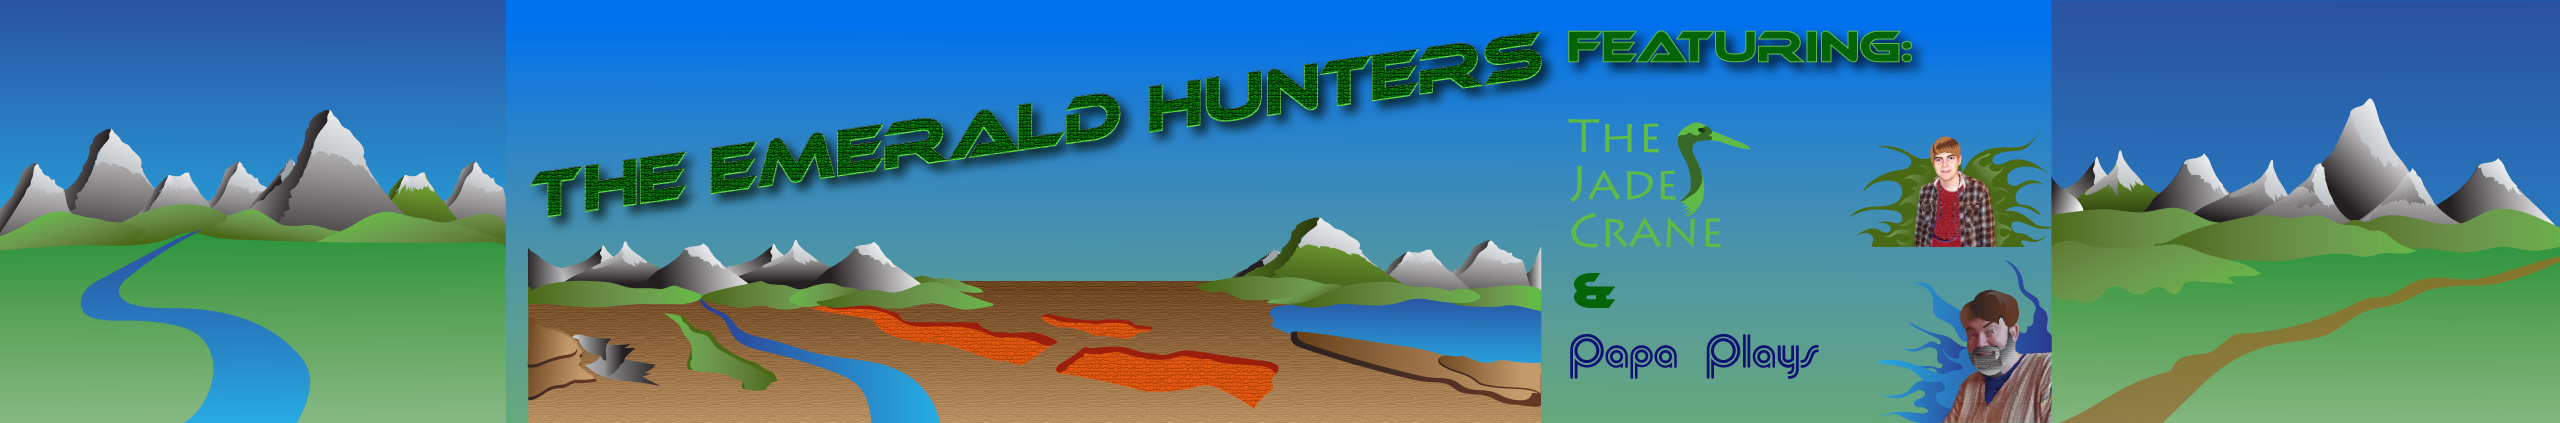 Youtube Videos Banner The Emerald Hunters